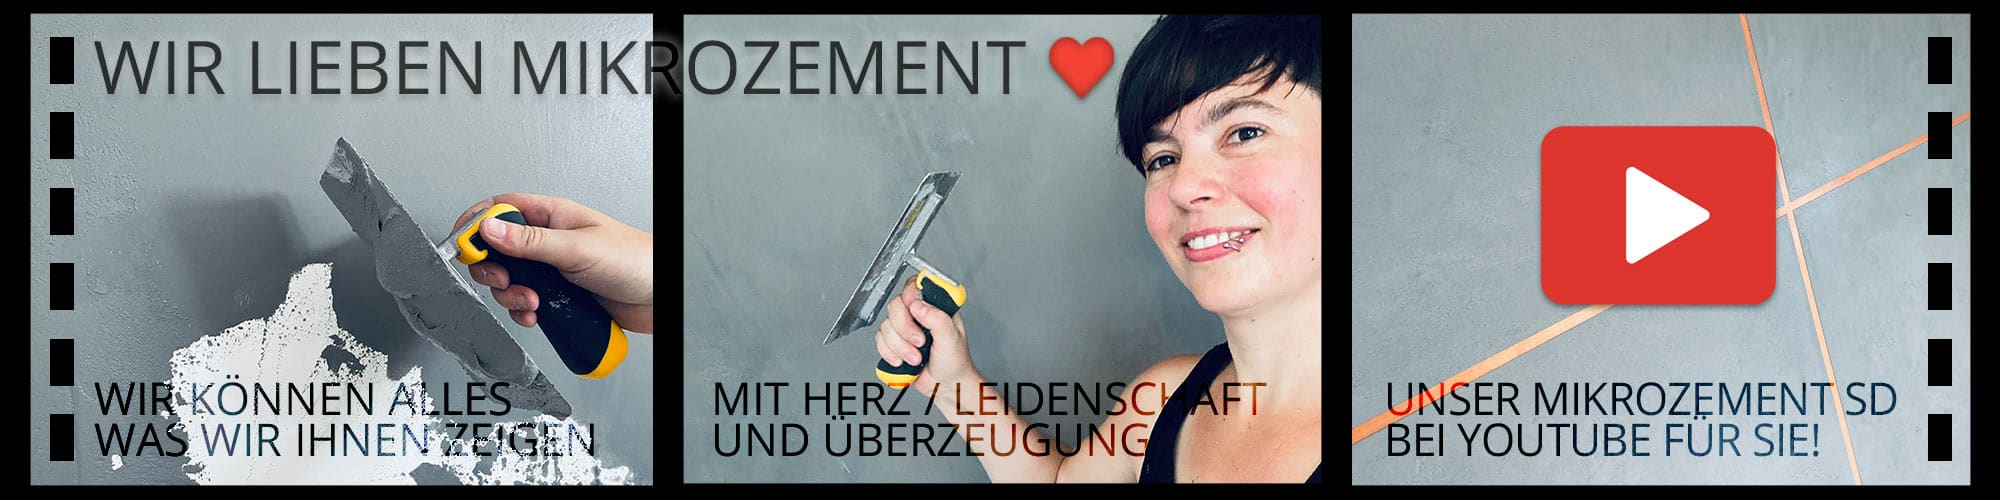 Mikrozement SD Microzement bei Youtube in der PRaxis